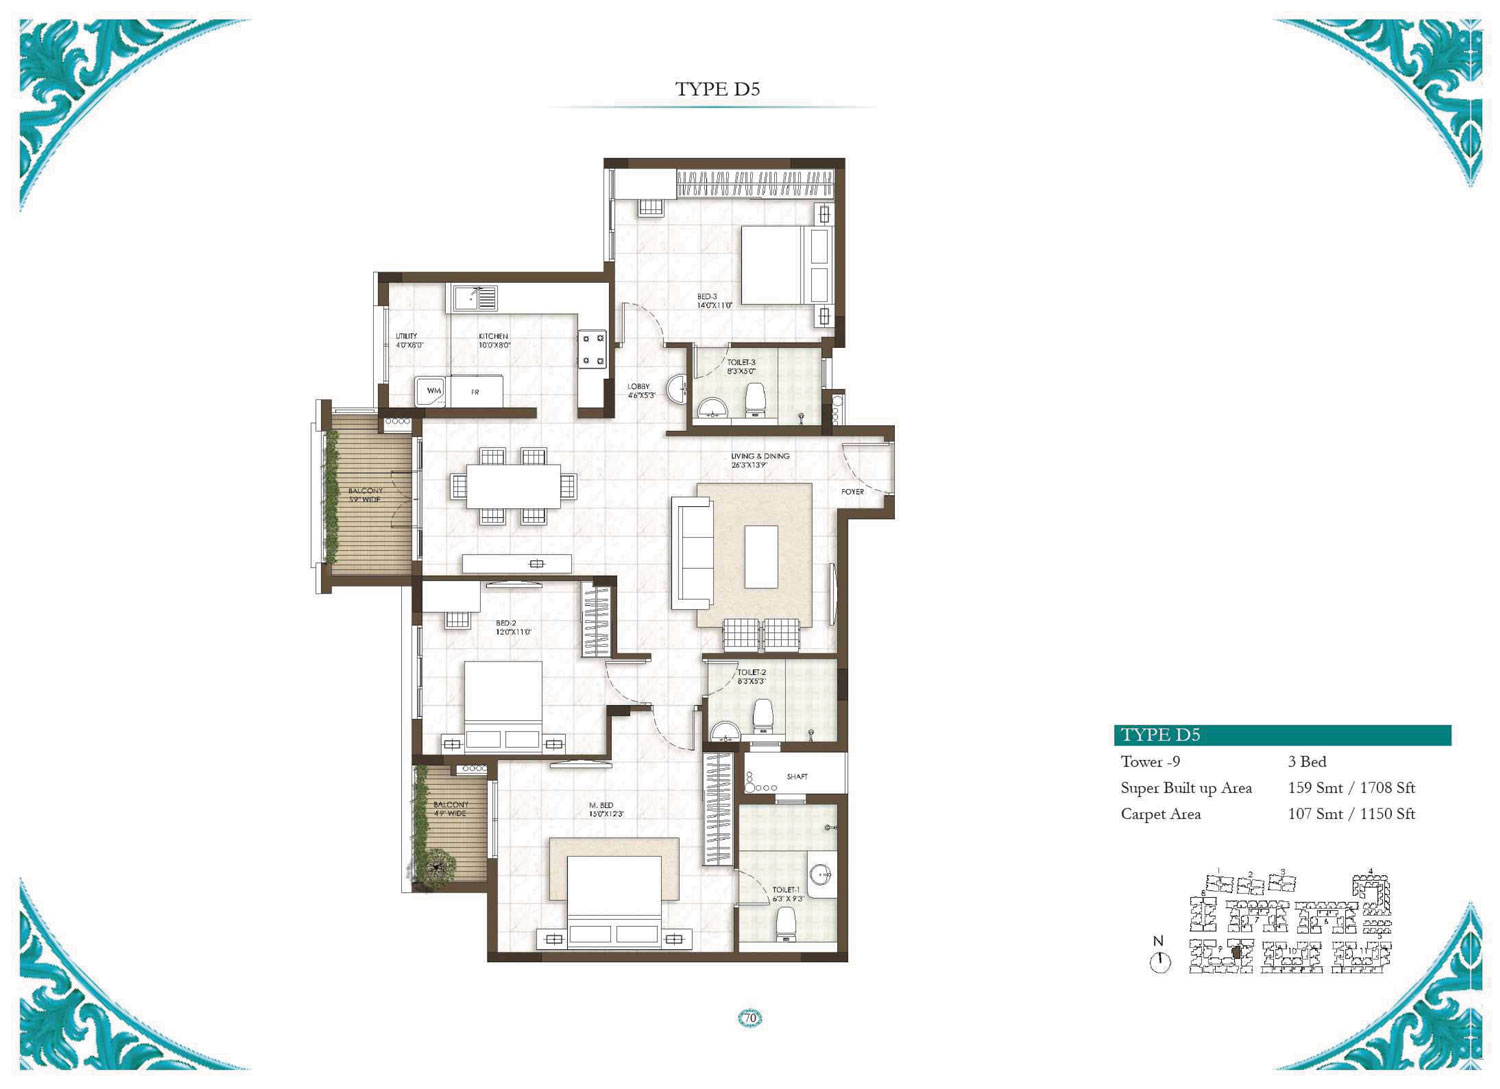 Type D5 - 3 Bed - 1708 Sq Ft